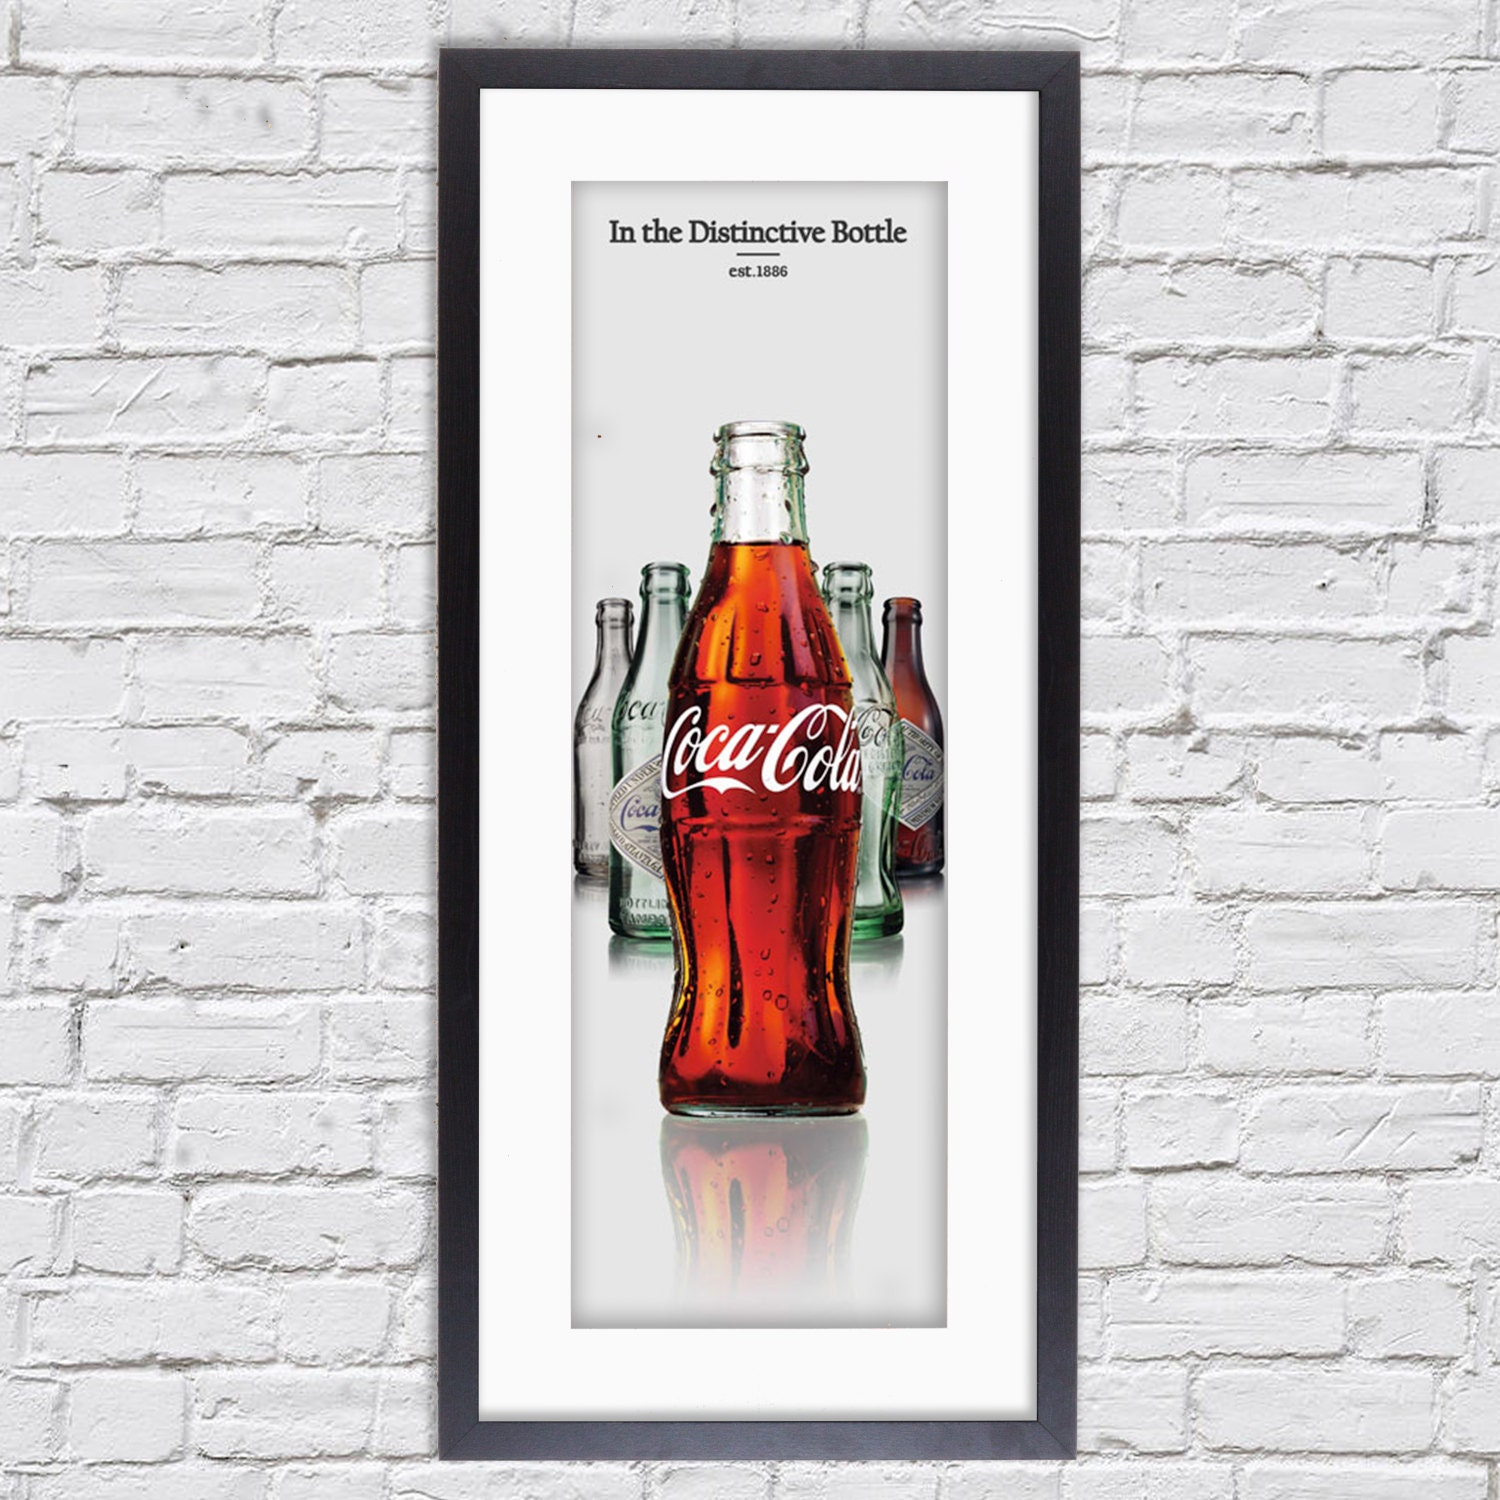 Coca Cola deco  Mounted  Framed Poster Art Print  43 x 19.5 Inches  ( 109.2 x 49.5 cm )